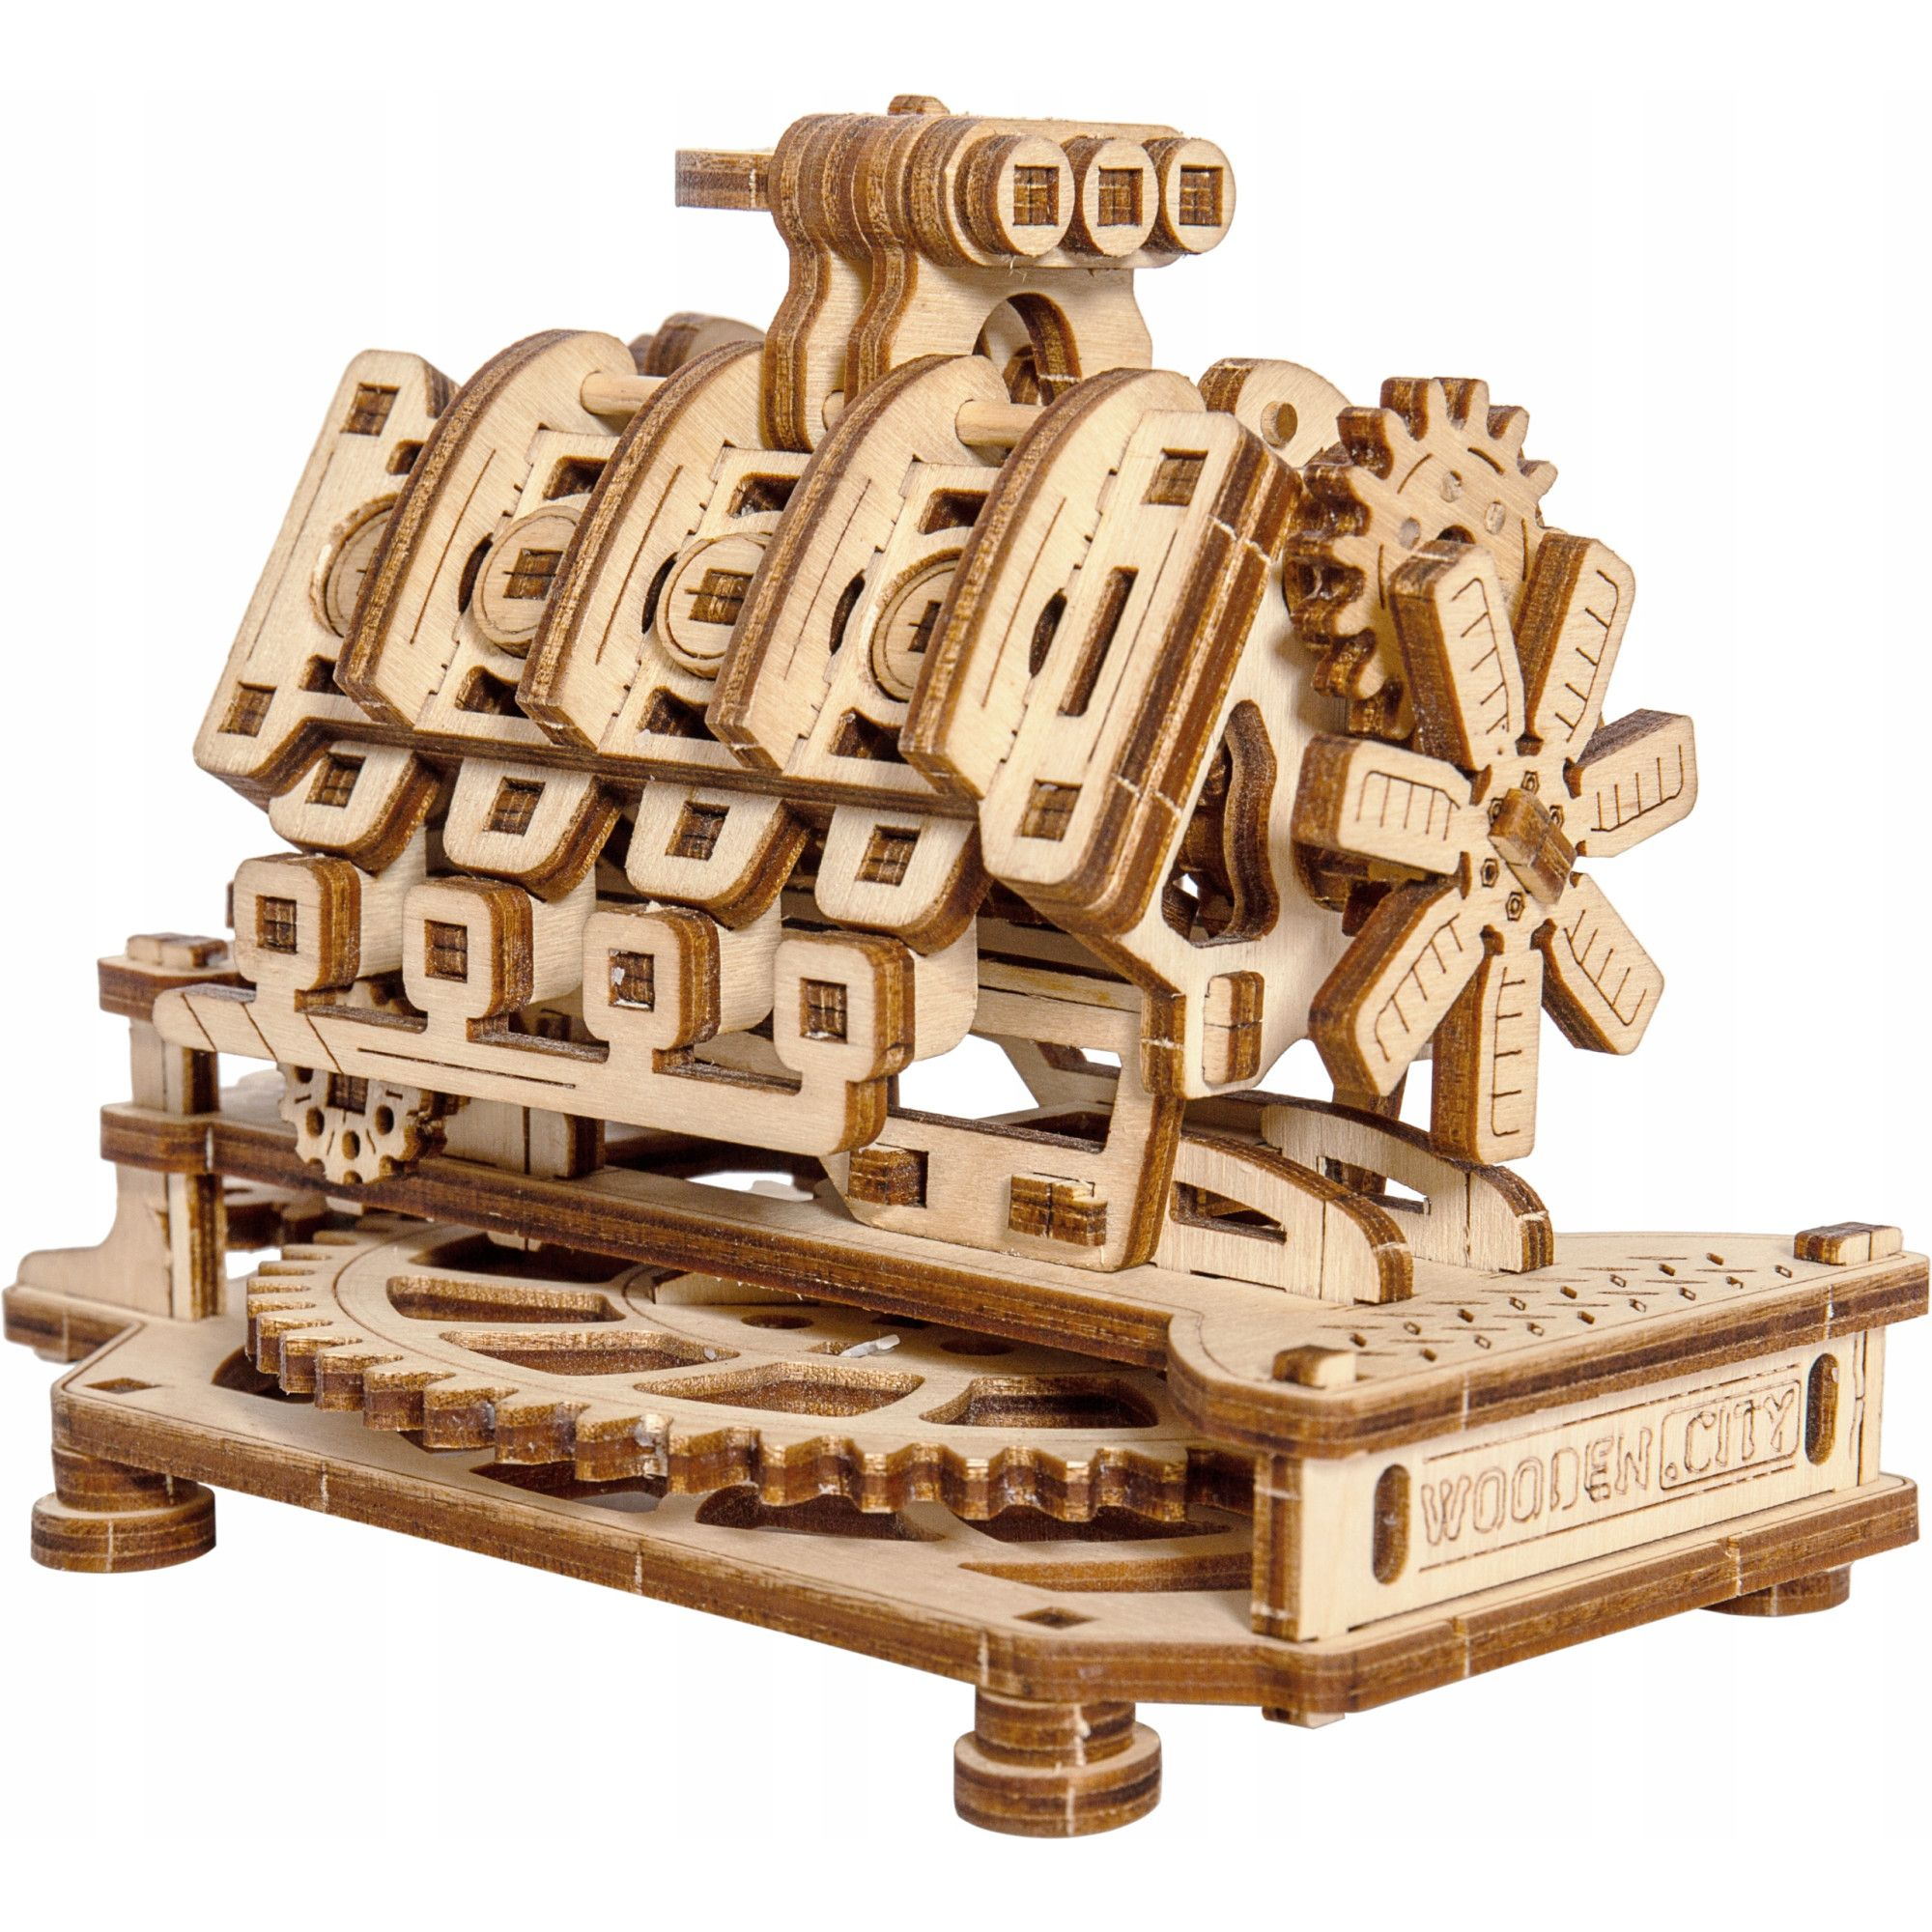 wooden-city-3d-holzpuzzle-v8-engine-200-teile-puzzle-wooden-city-wr316-8183